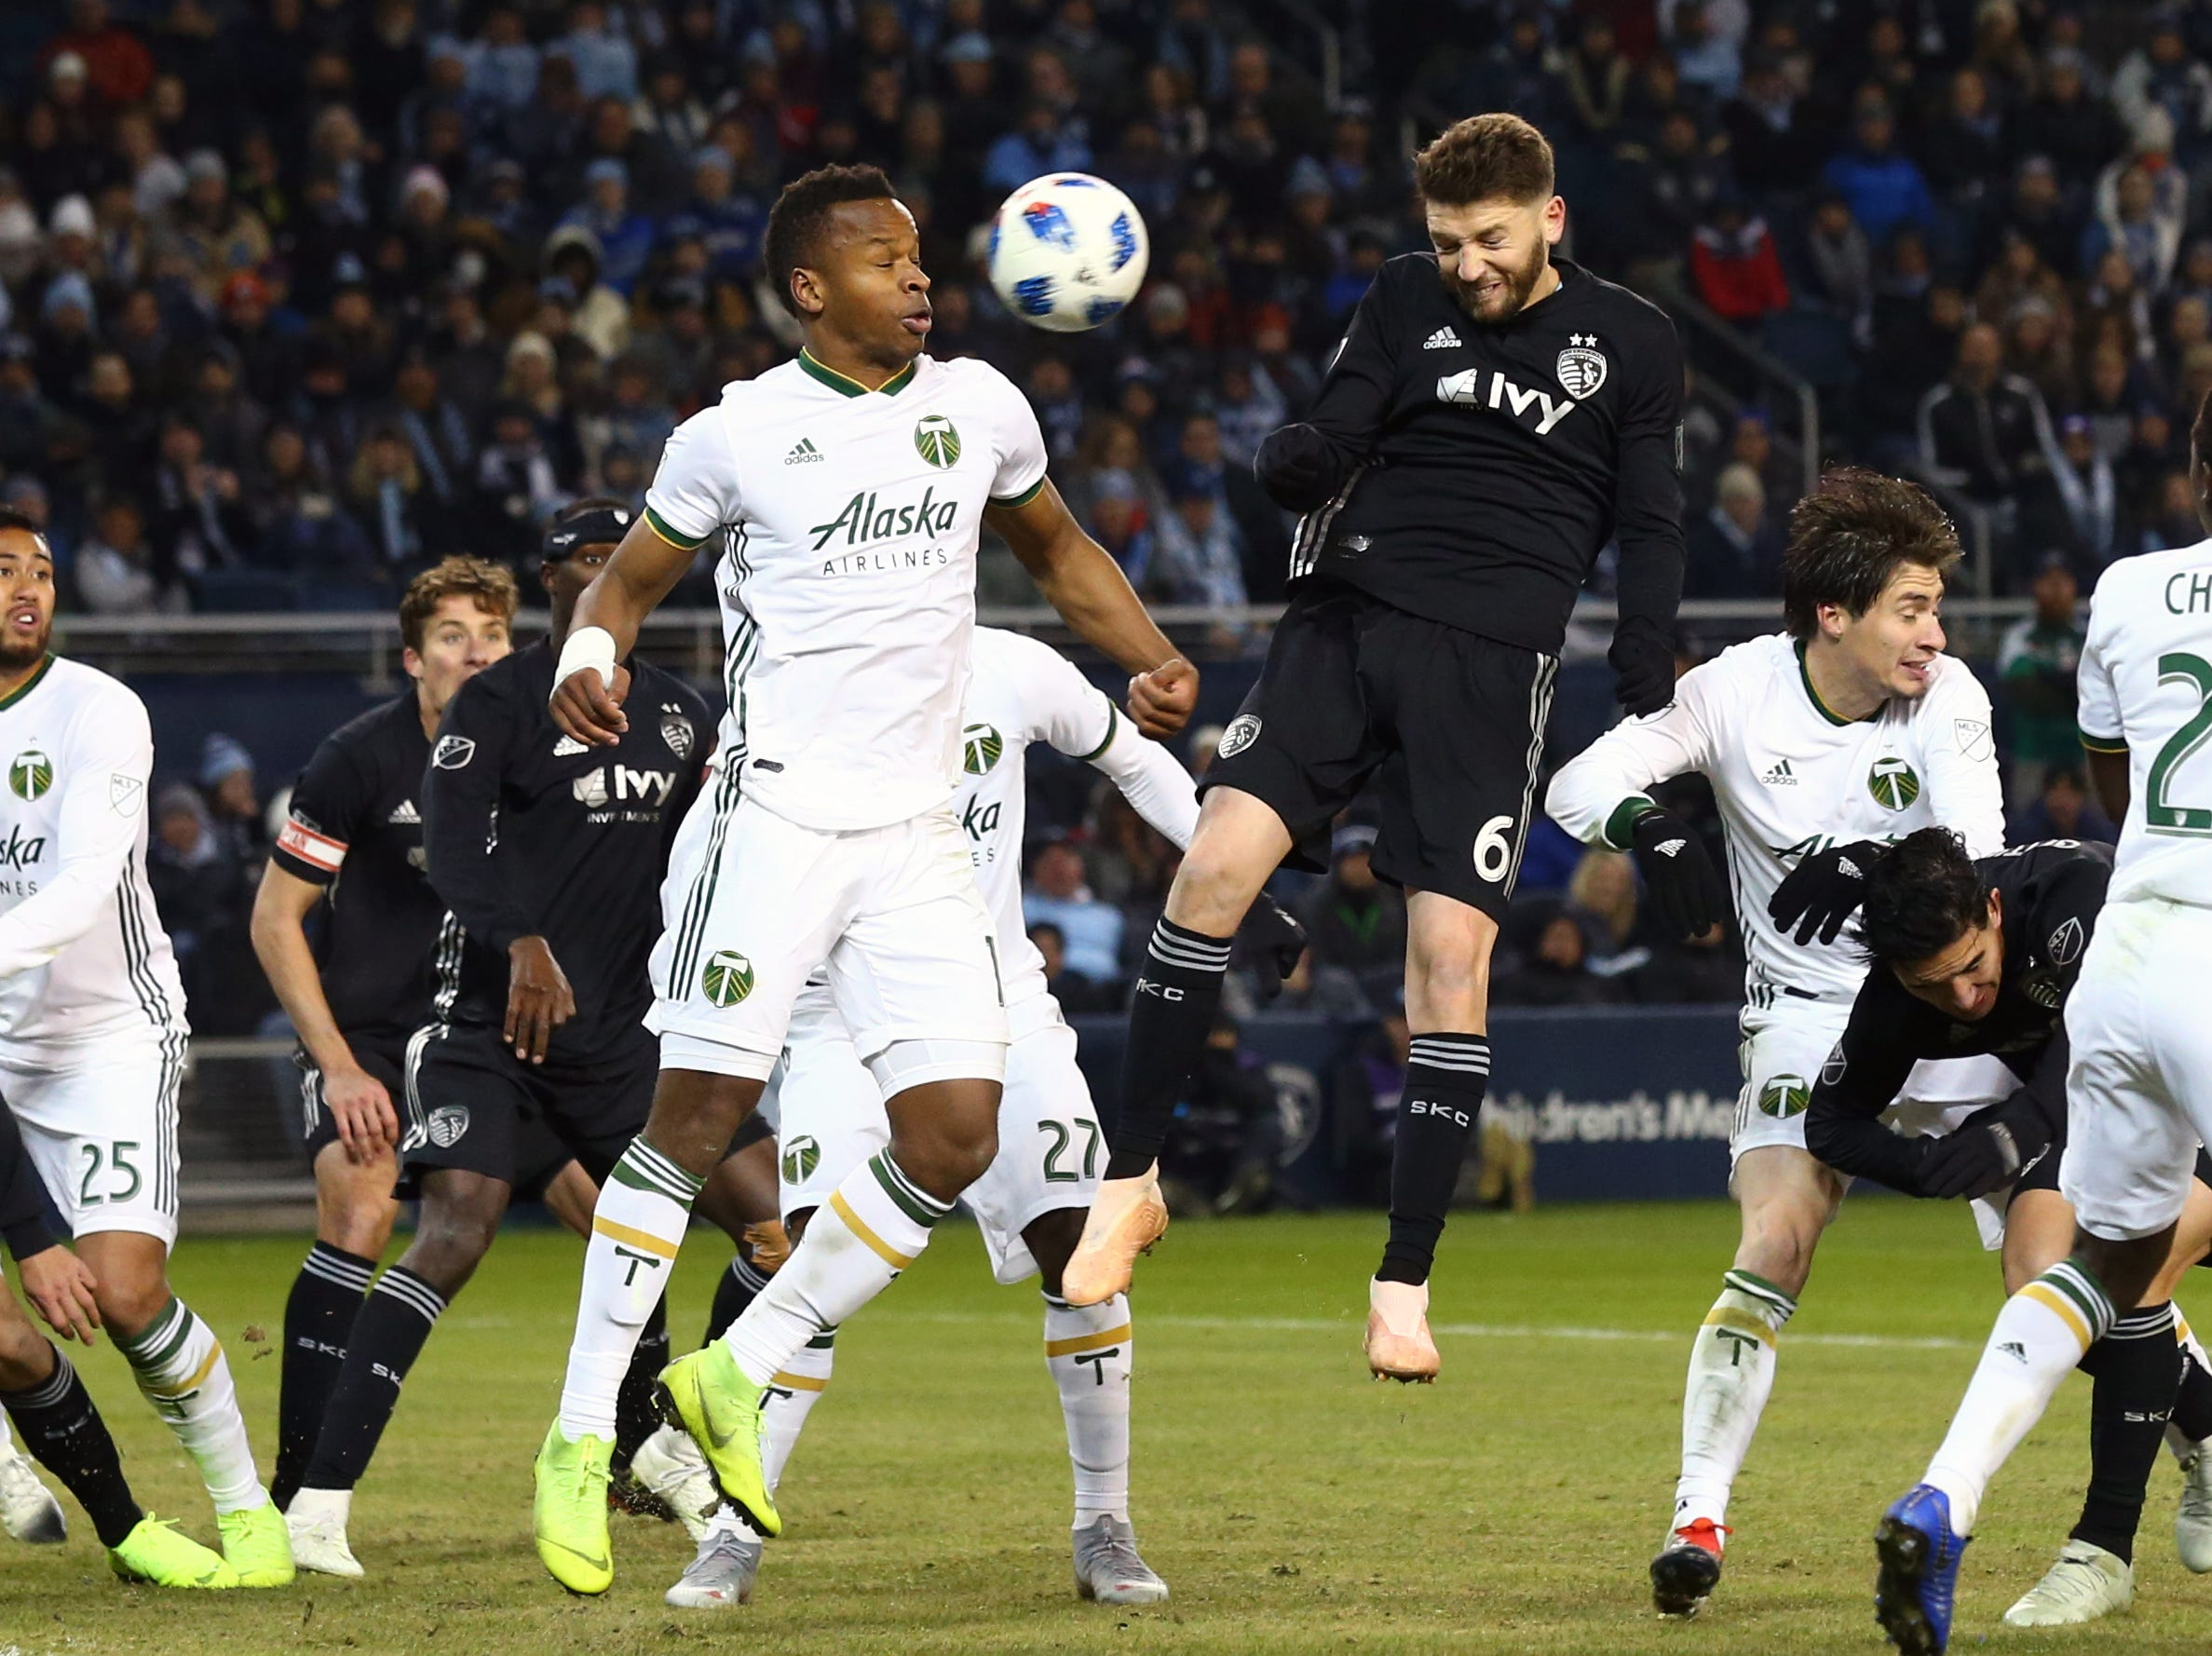 Nov 29, 2018; Kansas City, KS, USA; Sporting Kansas City midfielder Ilie Sanchez (6) heads a ball against Portland Timbers forward Jeremy Ebobisse (17) during the second half in the second leg of the MLS Western Conference Championship at Children's Mercy Park. Mandatory Credit: Jay Biggerstaff-USA TODAY Sports